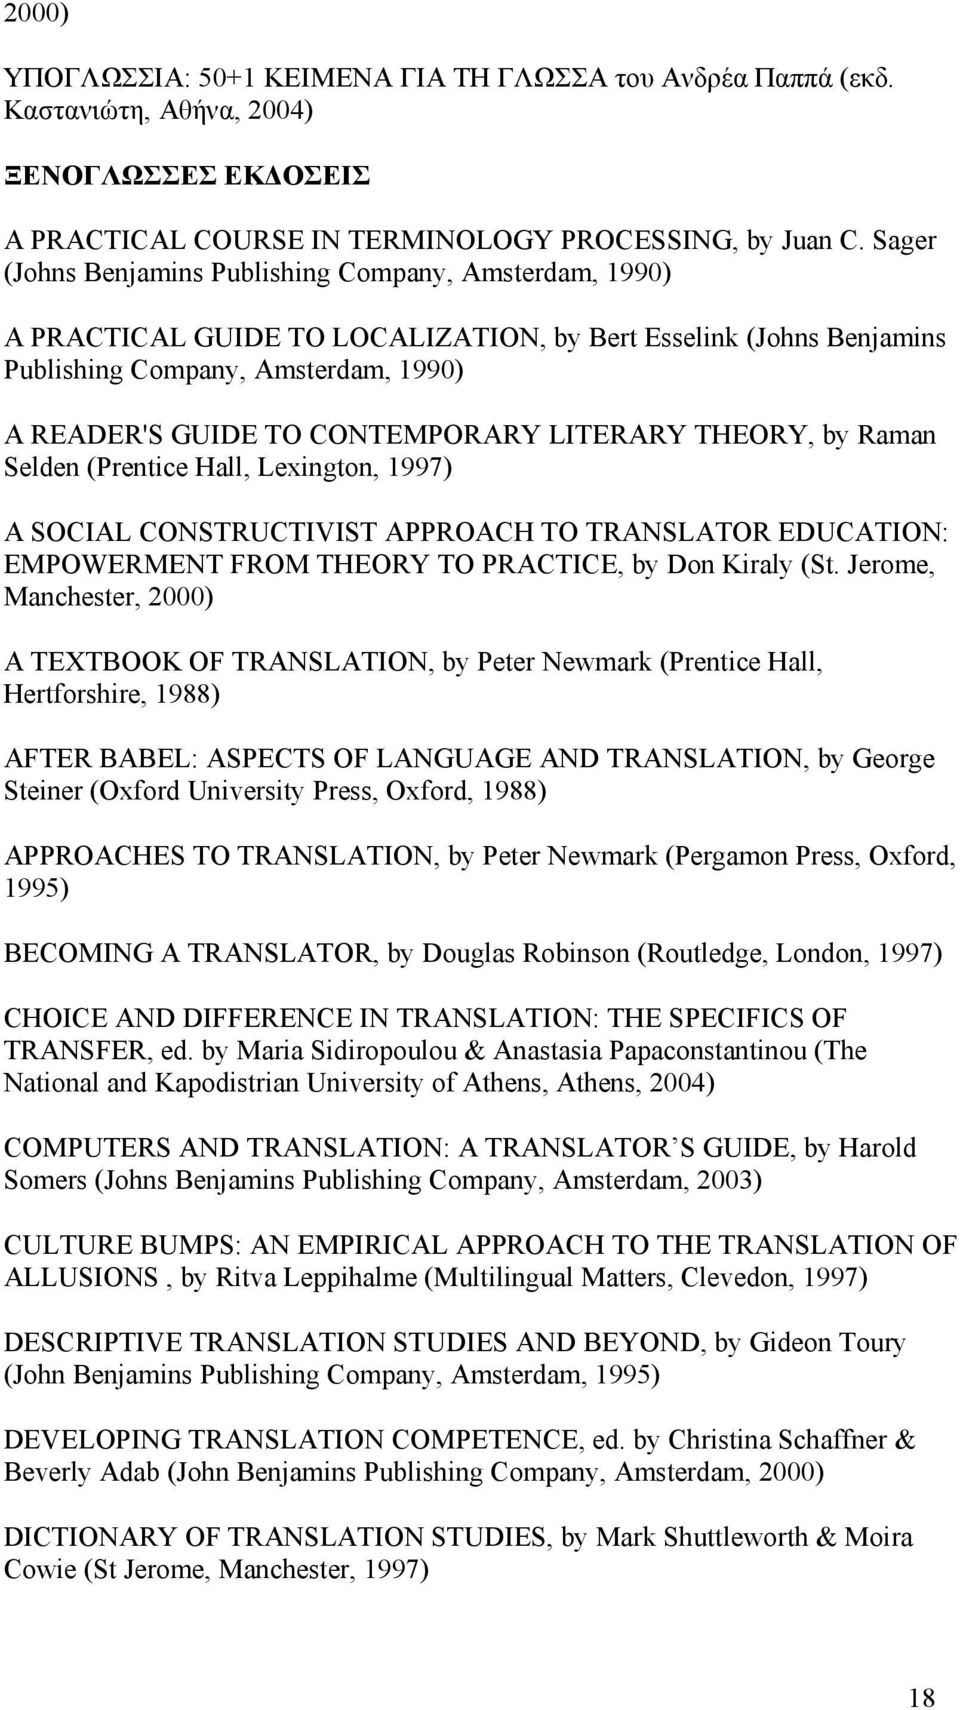 LITERARY THEORY, by Raman Selden (Prentice Hall, Lexington, 1997) A SOCIAL CONSTRUCTIVIST APPROACH TO TRANSLATOR EDUCATION: EMPOWERMENT FROM THEORY TO PRACTICE, by Don Kiraly (St.